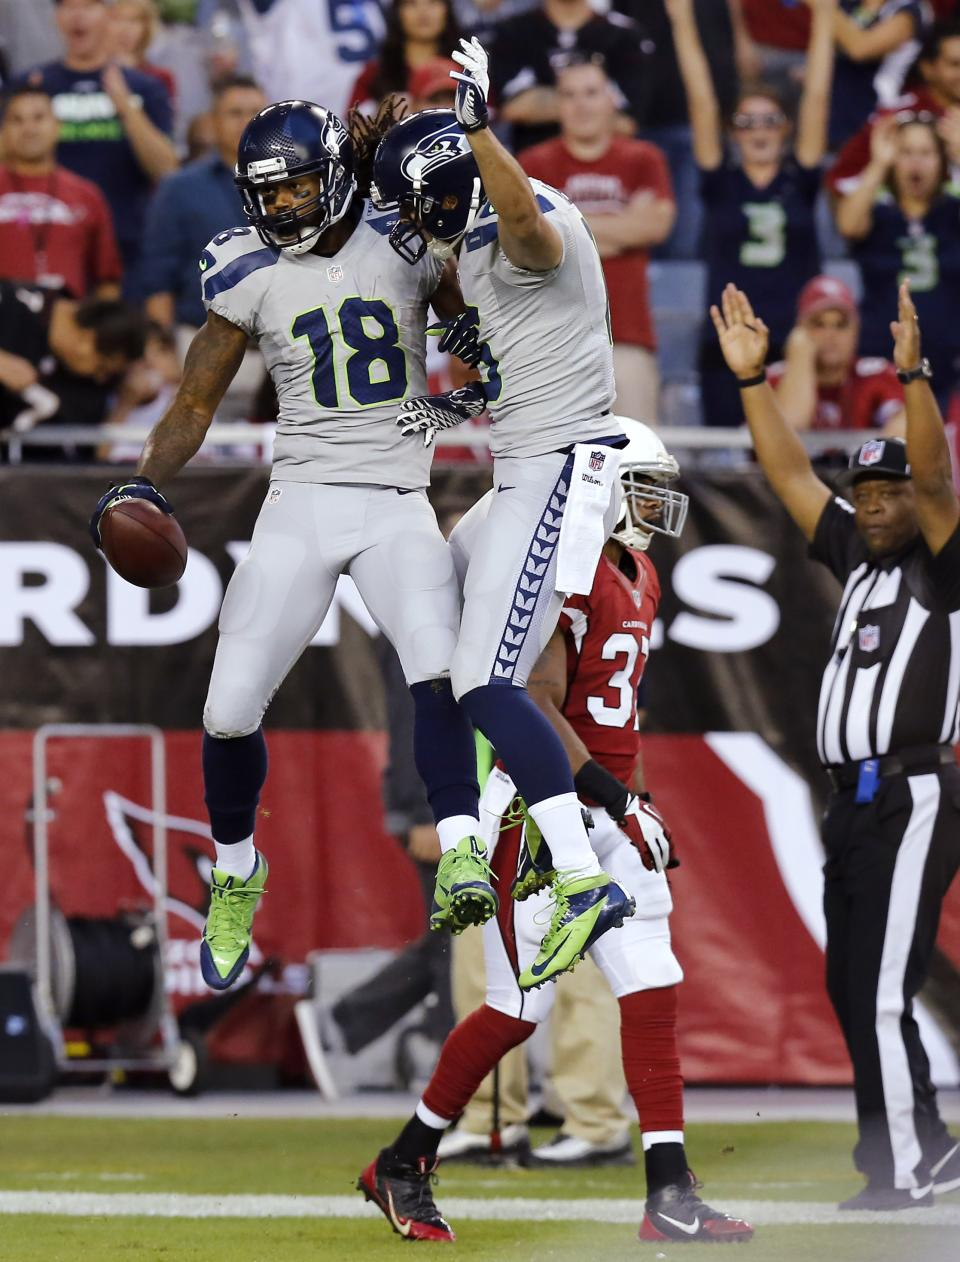 Seattle Seahawks wide receiver Sidney Rice (18) celebrates his touchdown with Jermaine Kearse, right, as Arizona Cardinals strong safety Yeremiah Bell, rear, walks away during the first half of an NFL football game, Thursday, Oct. 17, 2013, in Glendale, Ariz. (AP Photo/Ross D. Franklin)